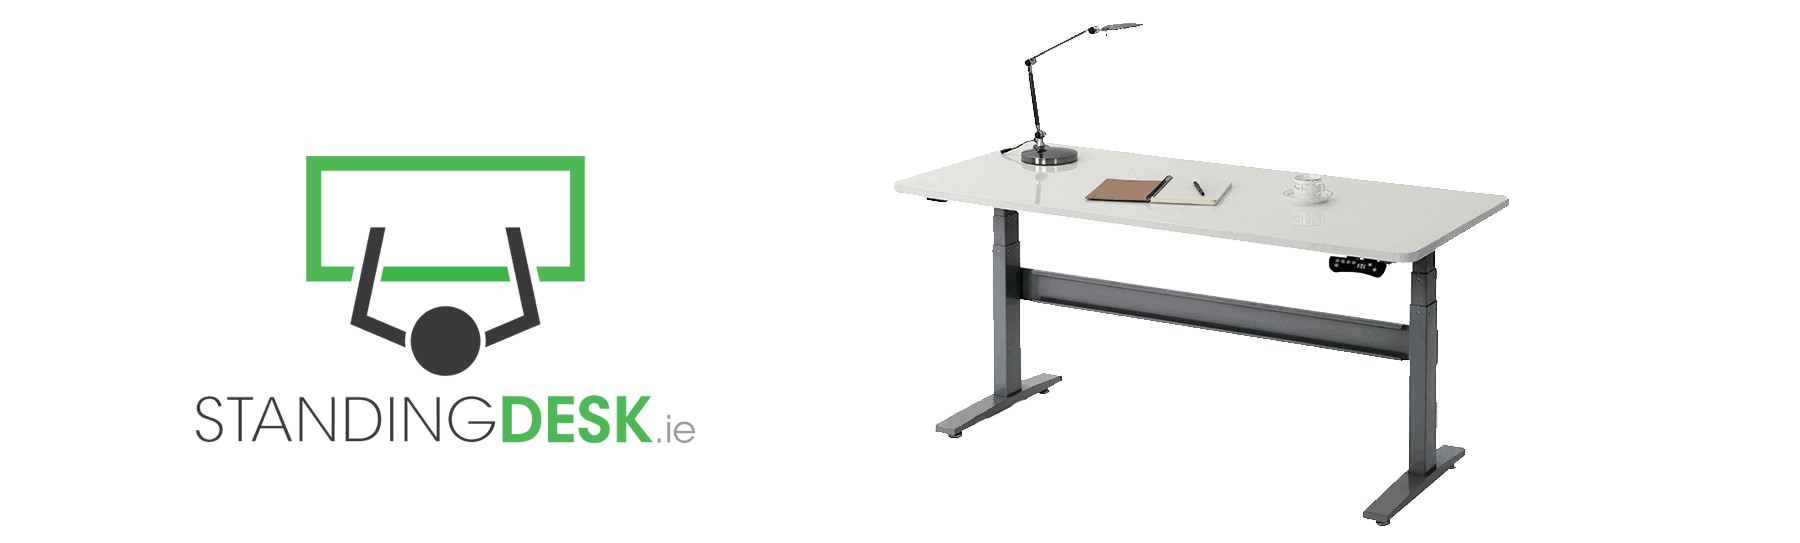 Standing Desk Ireland Motorized Height Adjustable Standing Desks